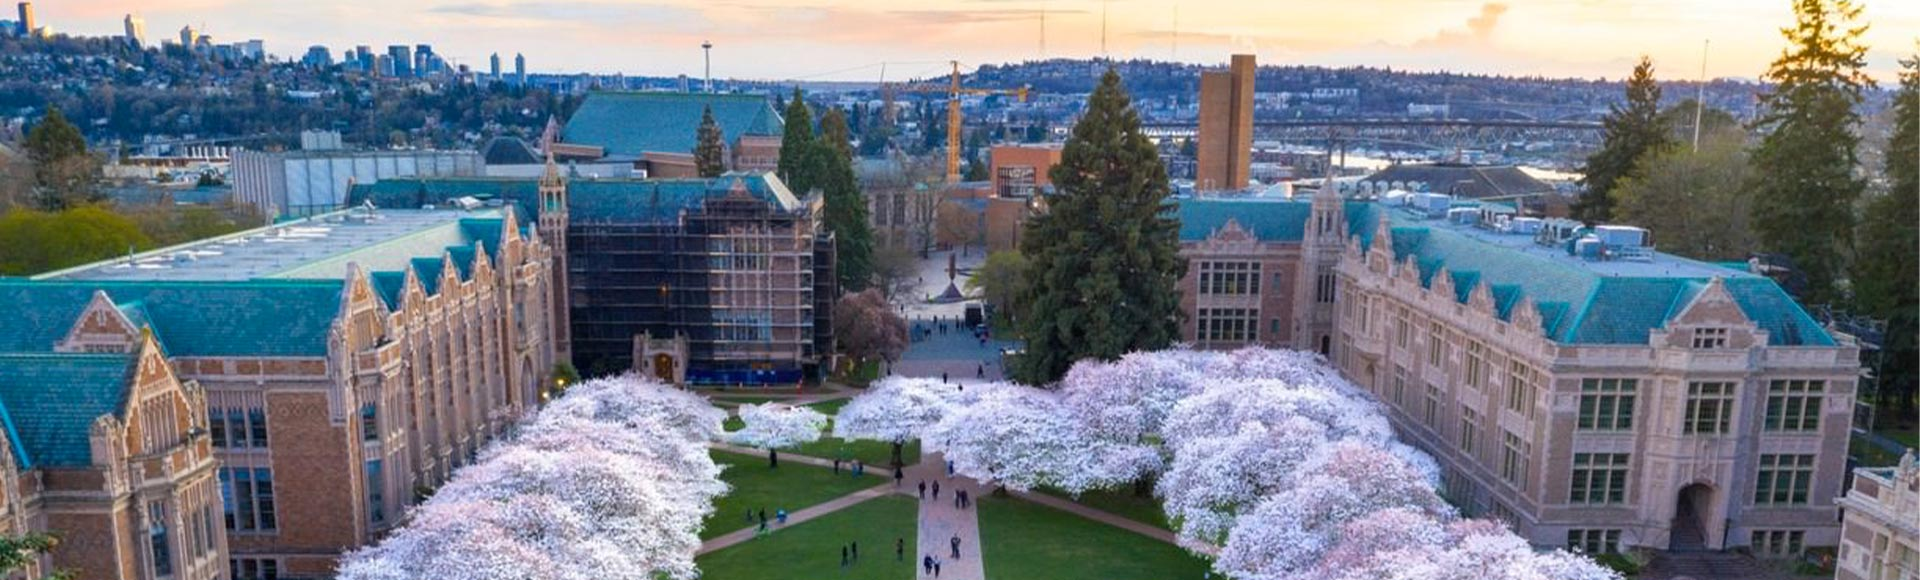 university-of-washington.jpg